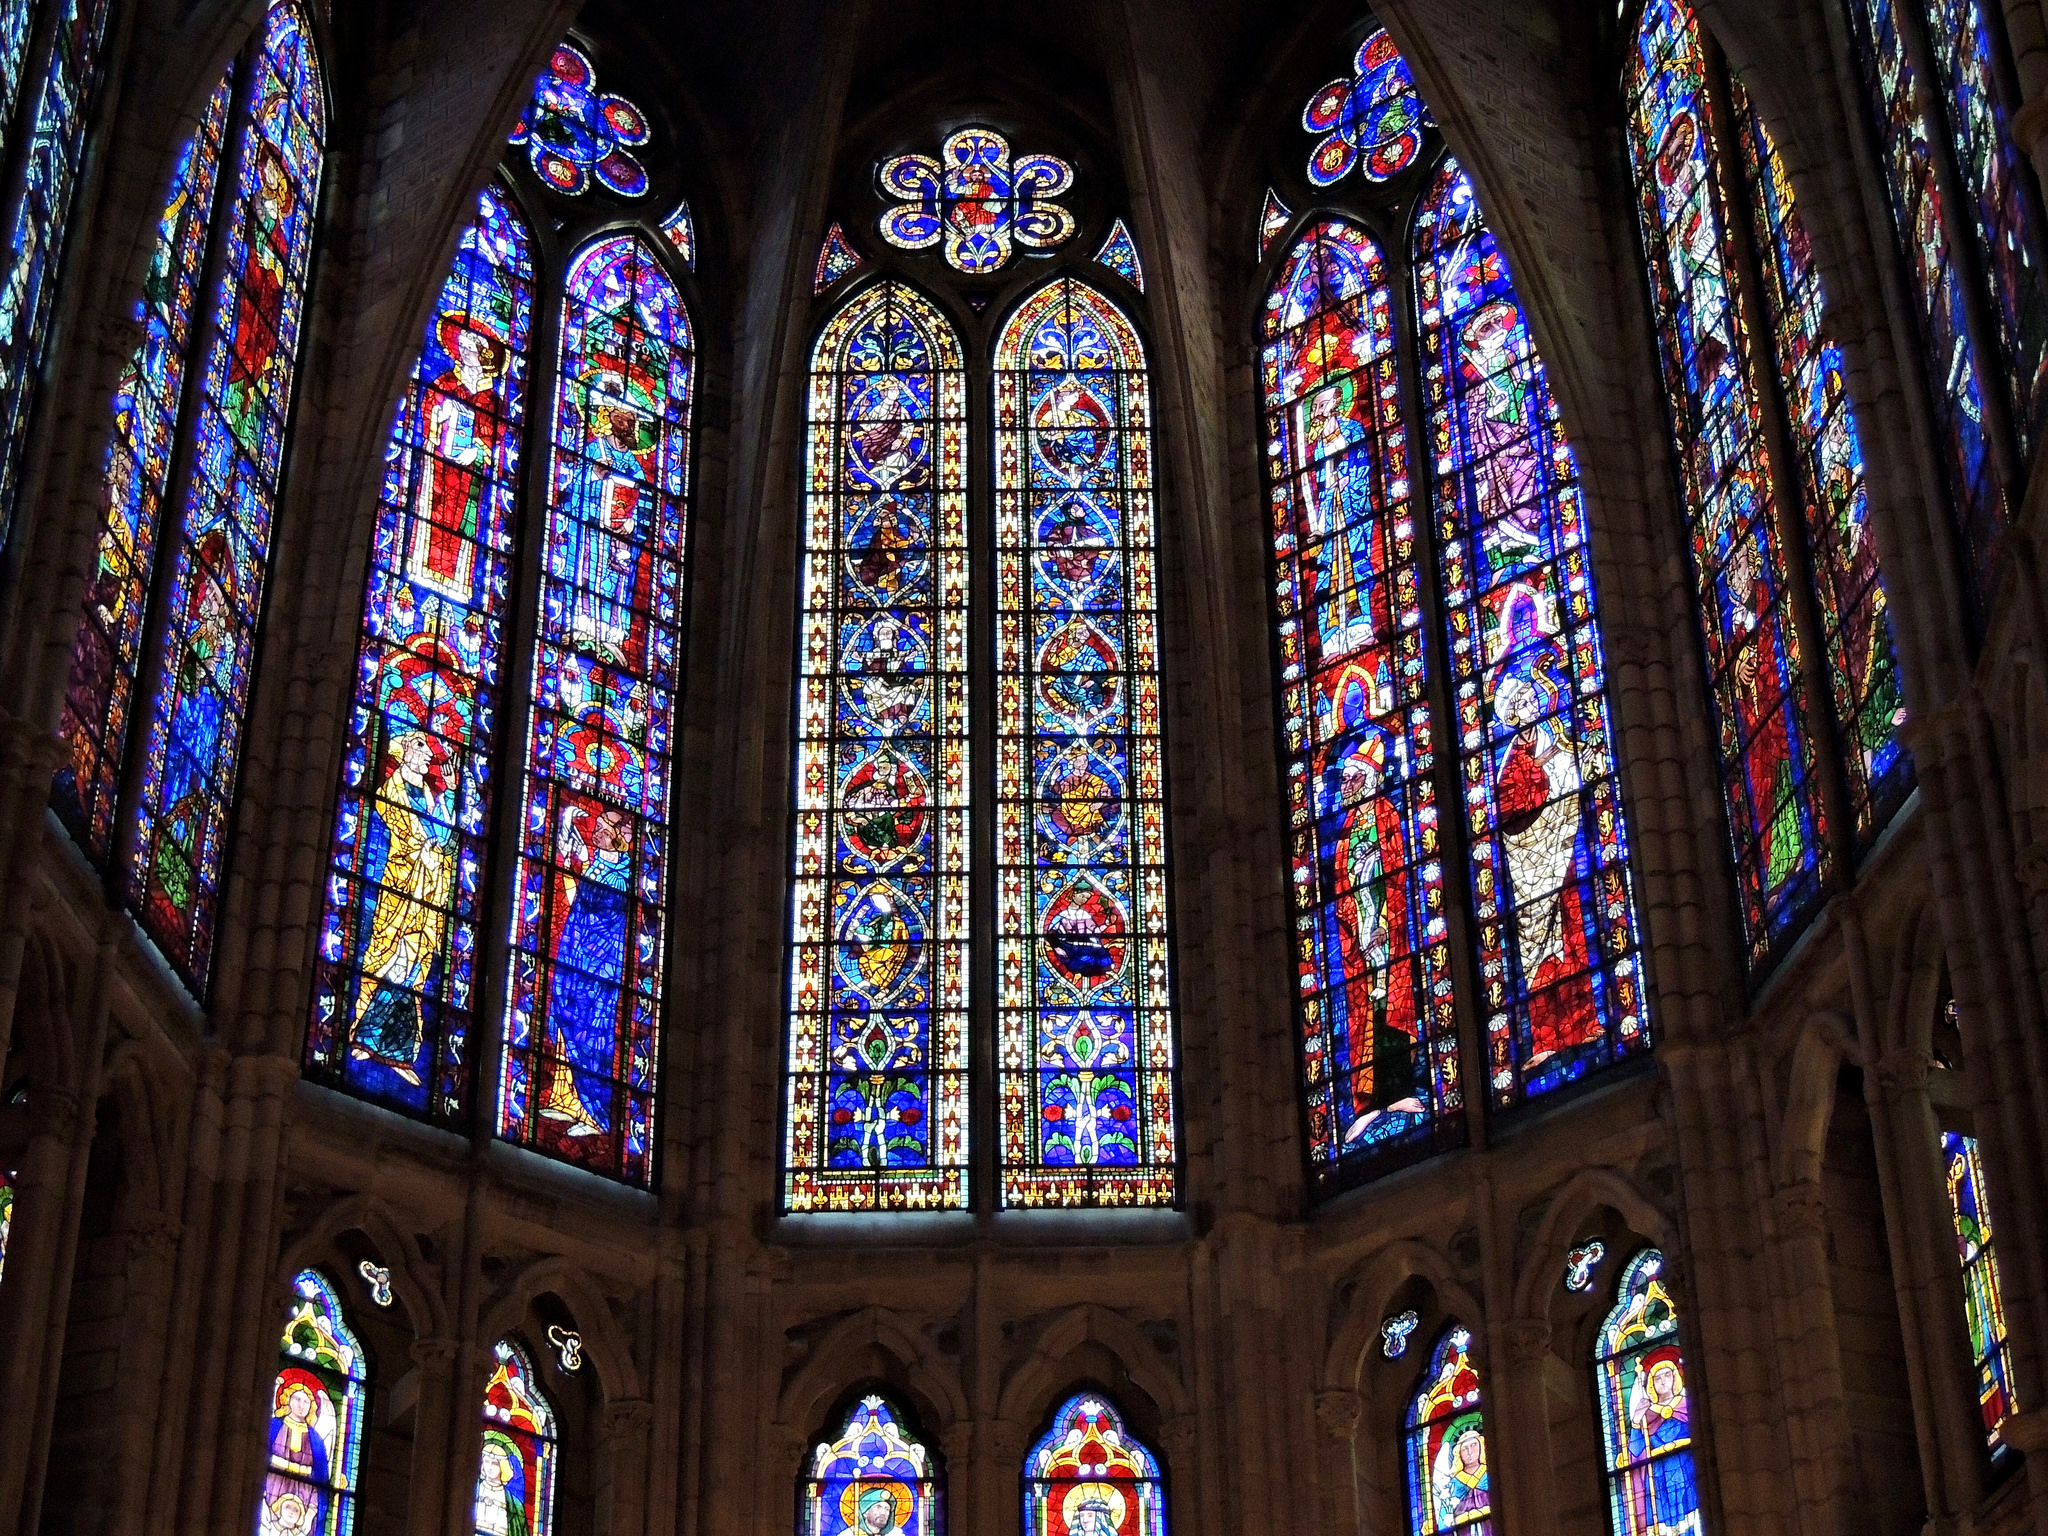 Stained glass window of the Cathedral of León